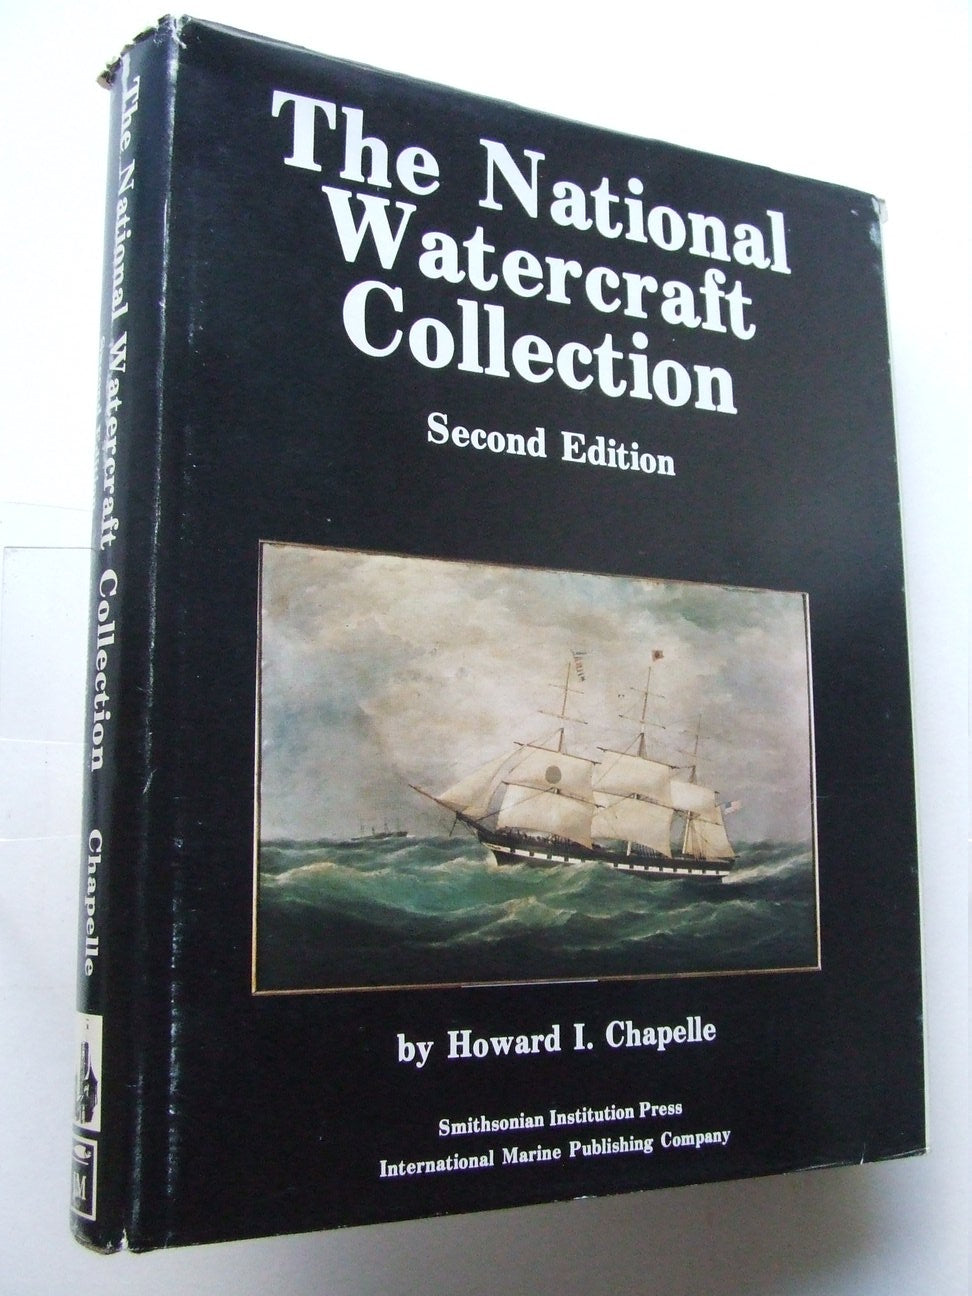 The National Watercraft Collection